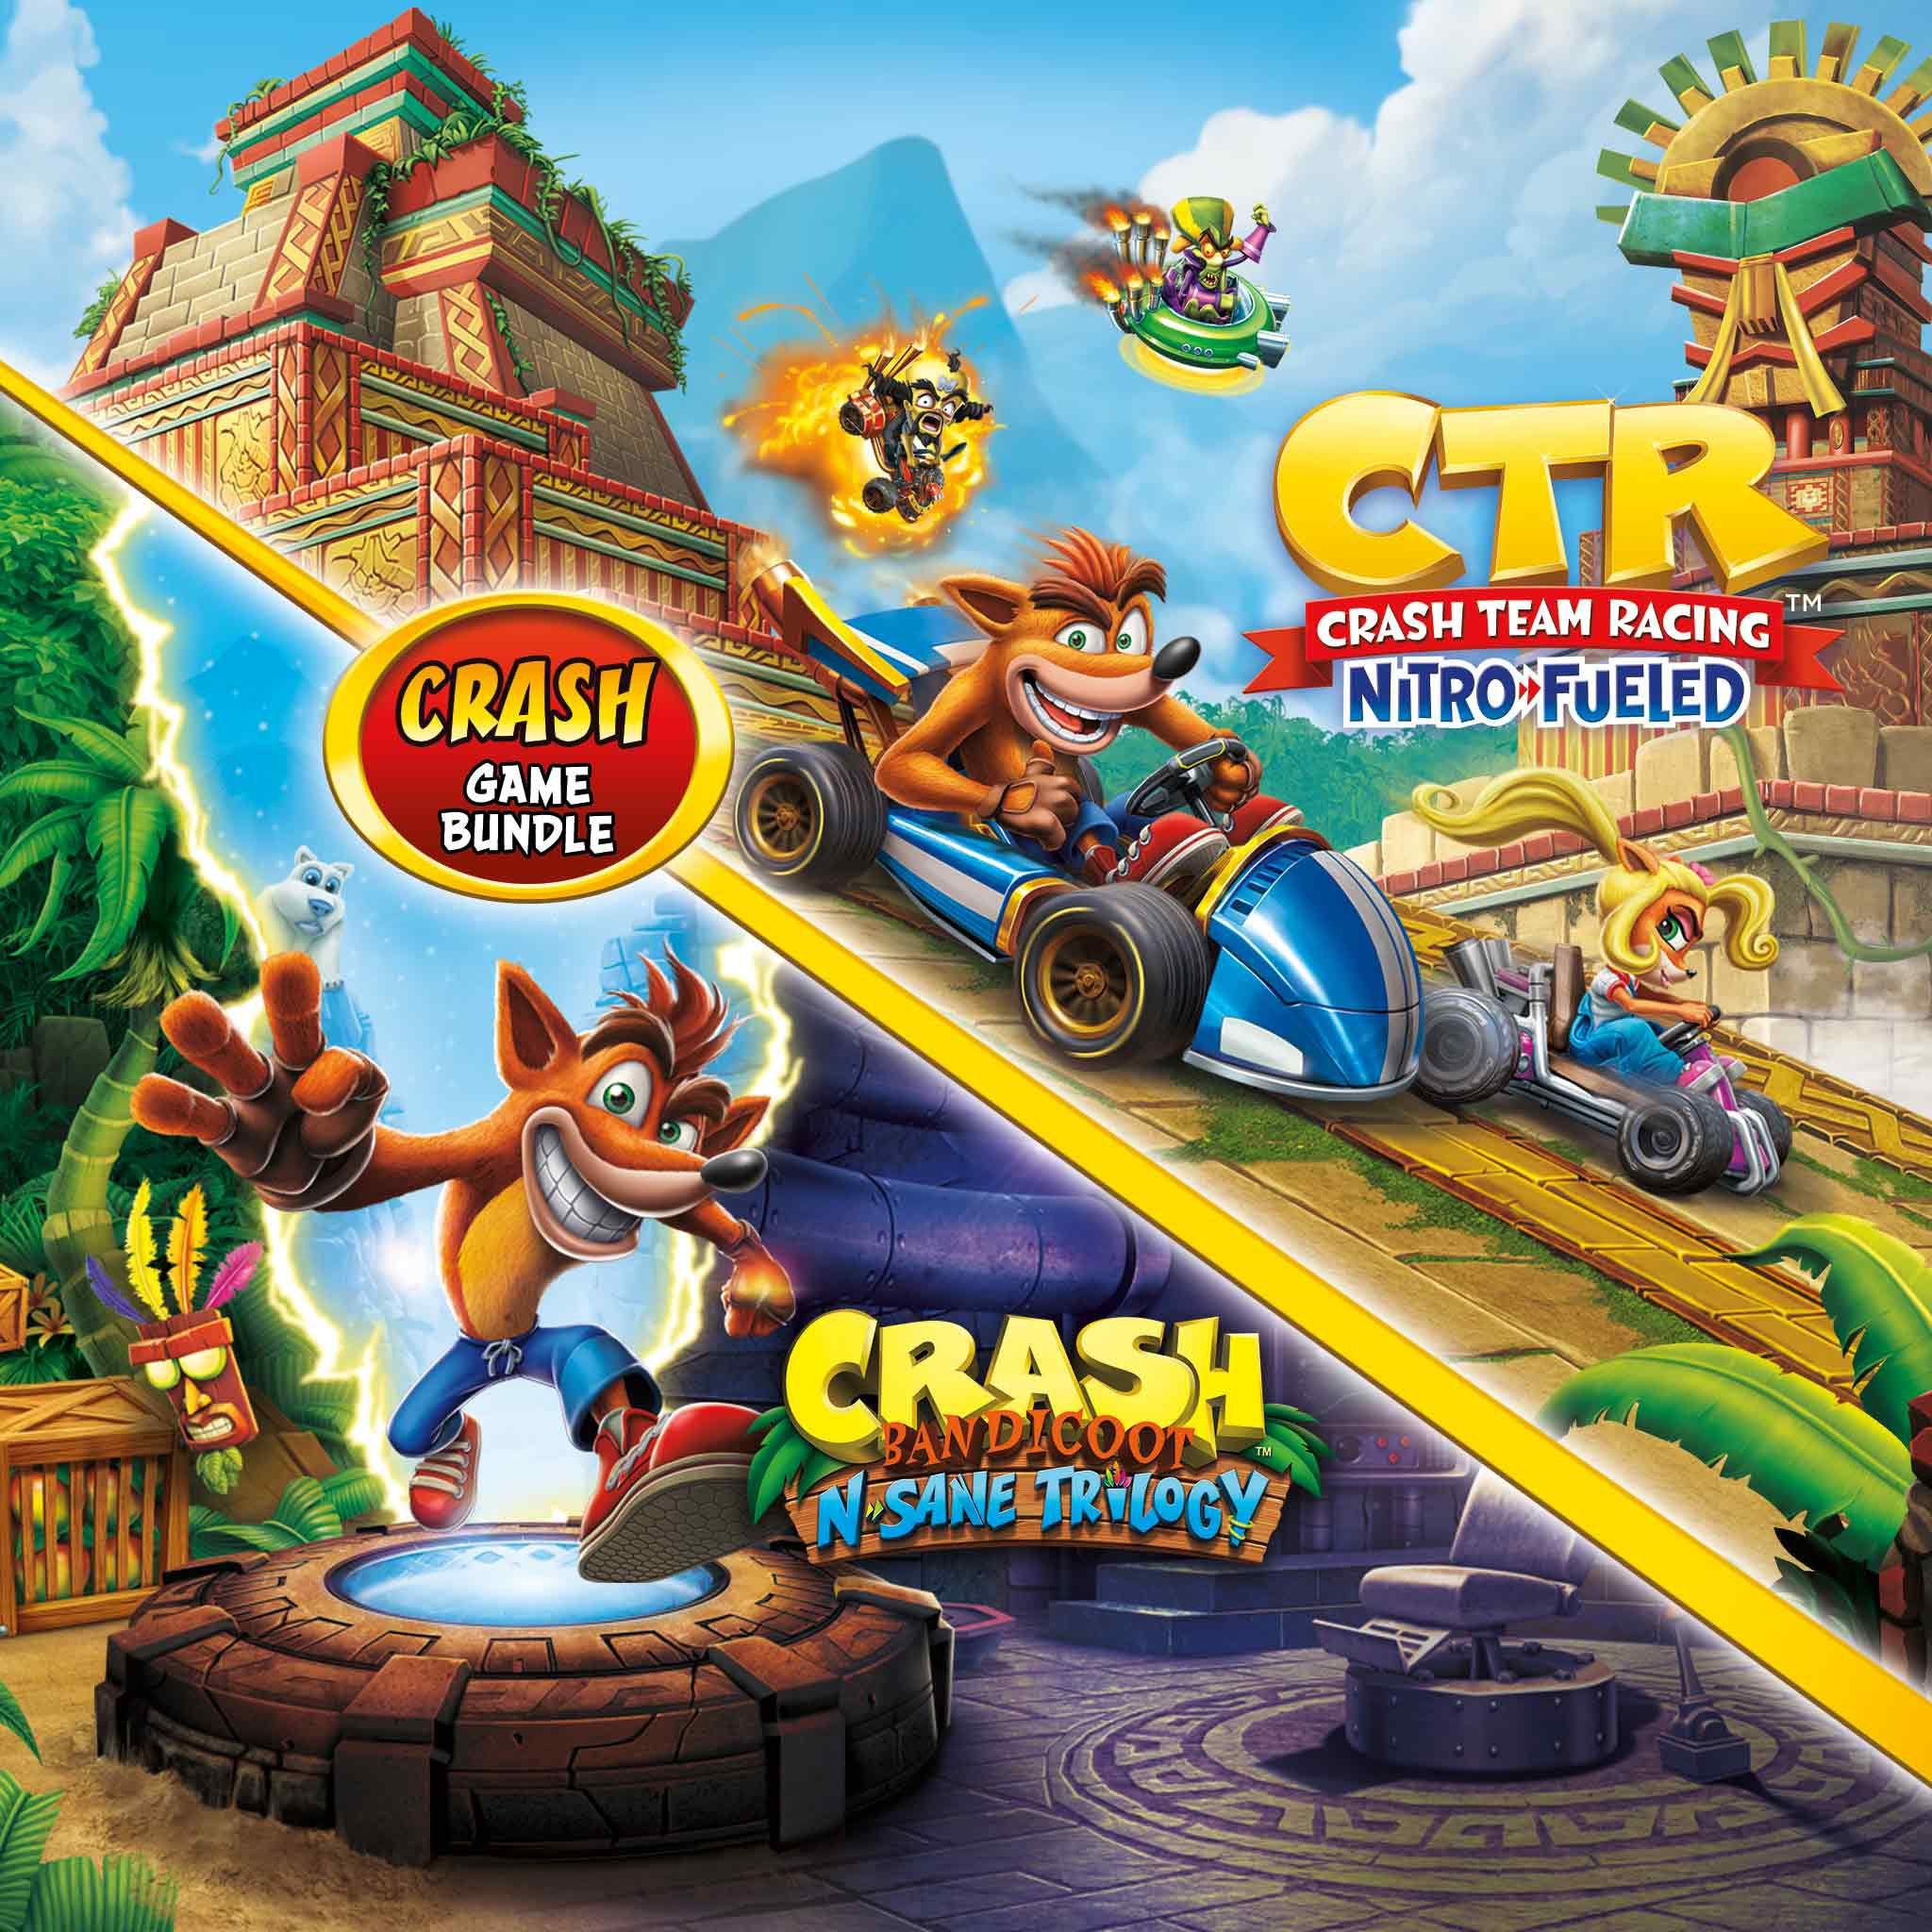 Lote Crash Bandicoot™: N. Sane Trilogy + CTR Nitro-Fueled